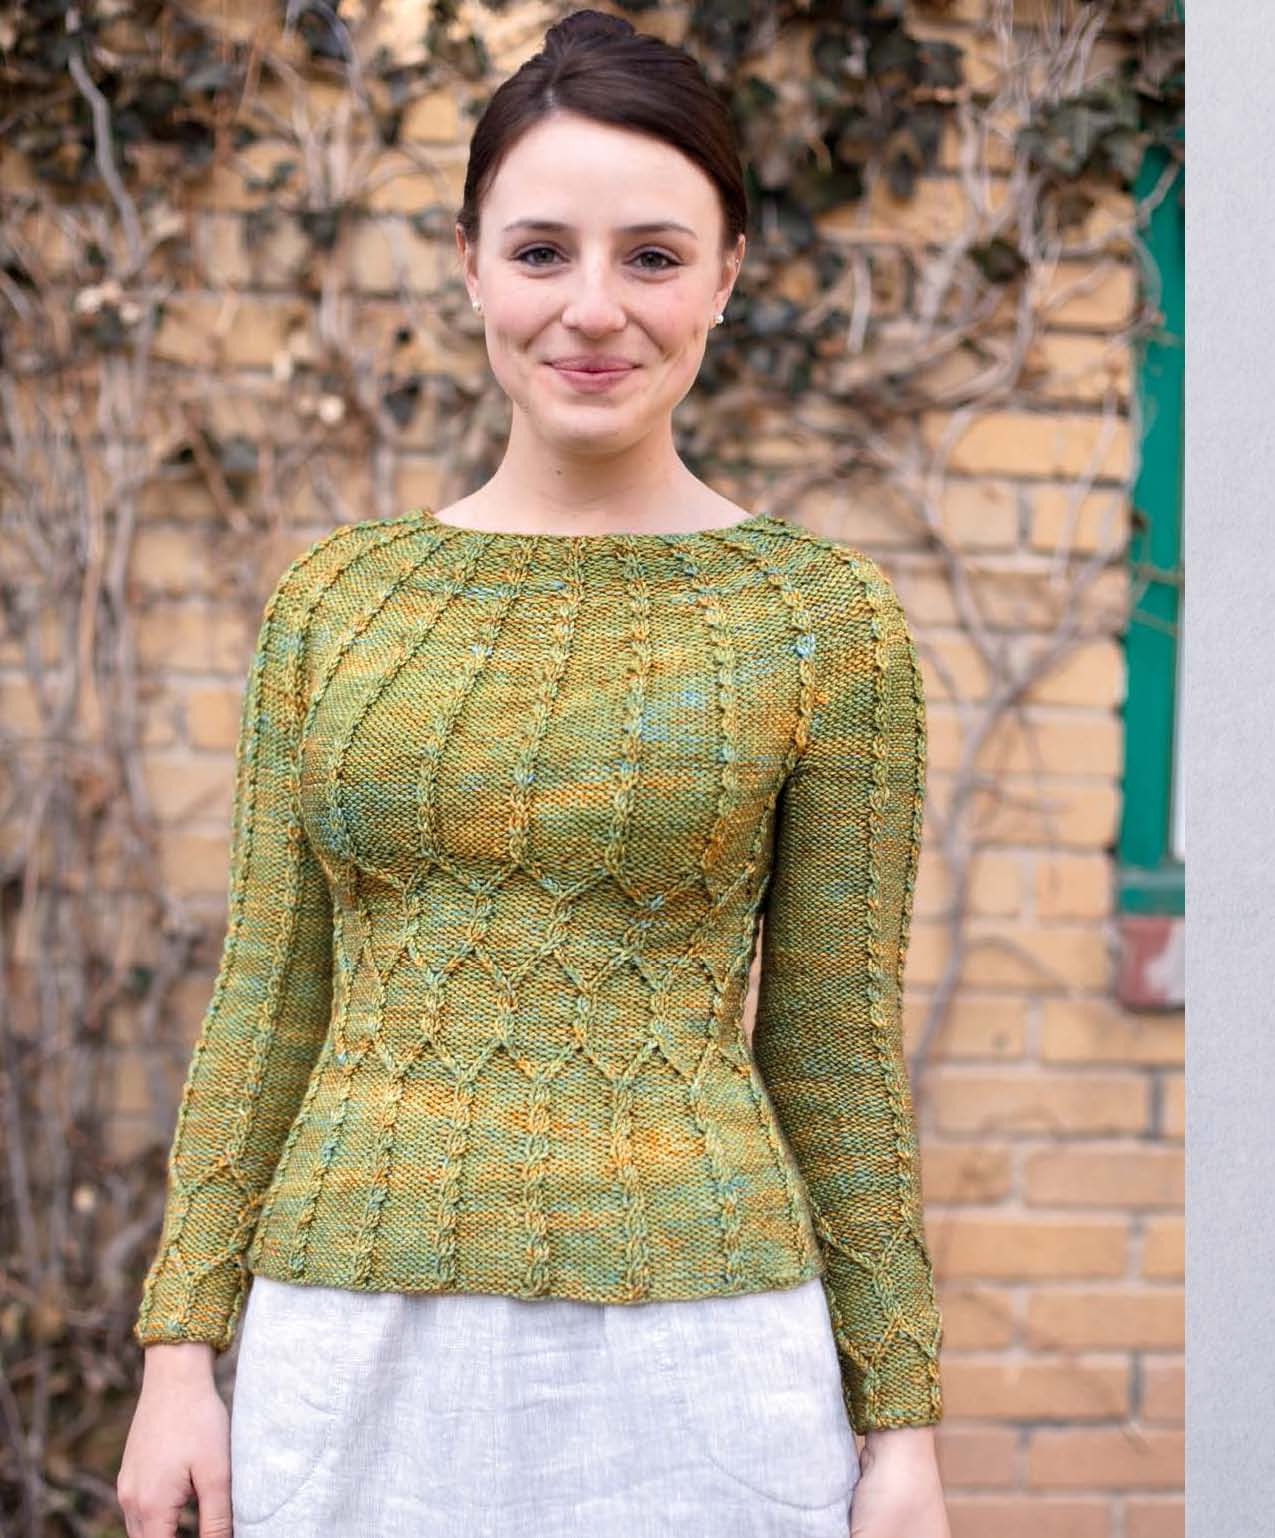 The Best of Jane Austen Knits - Sotherton beauty shot